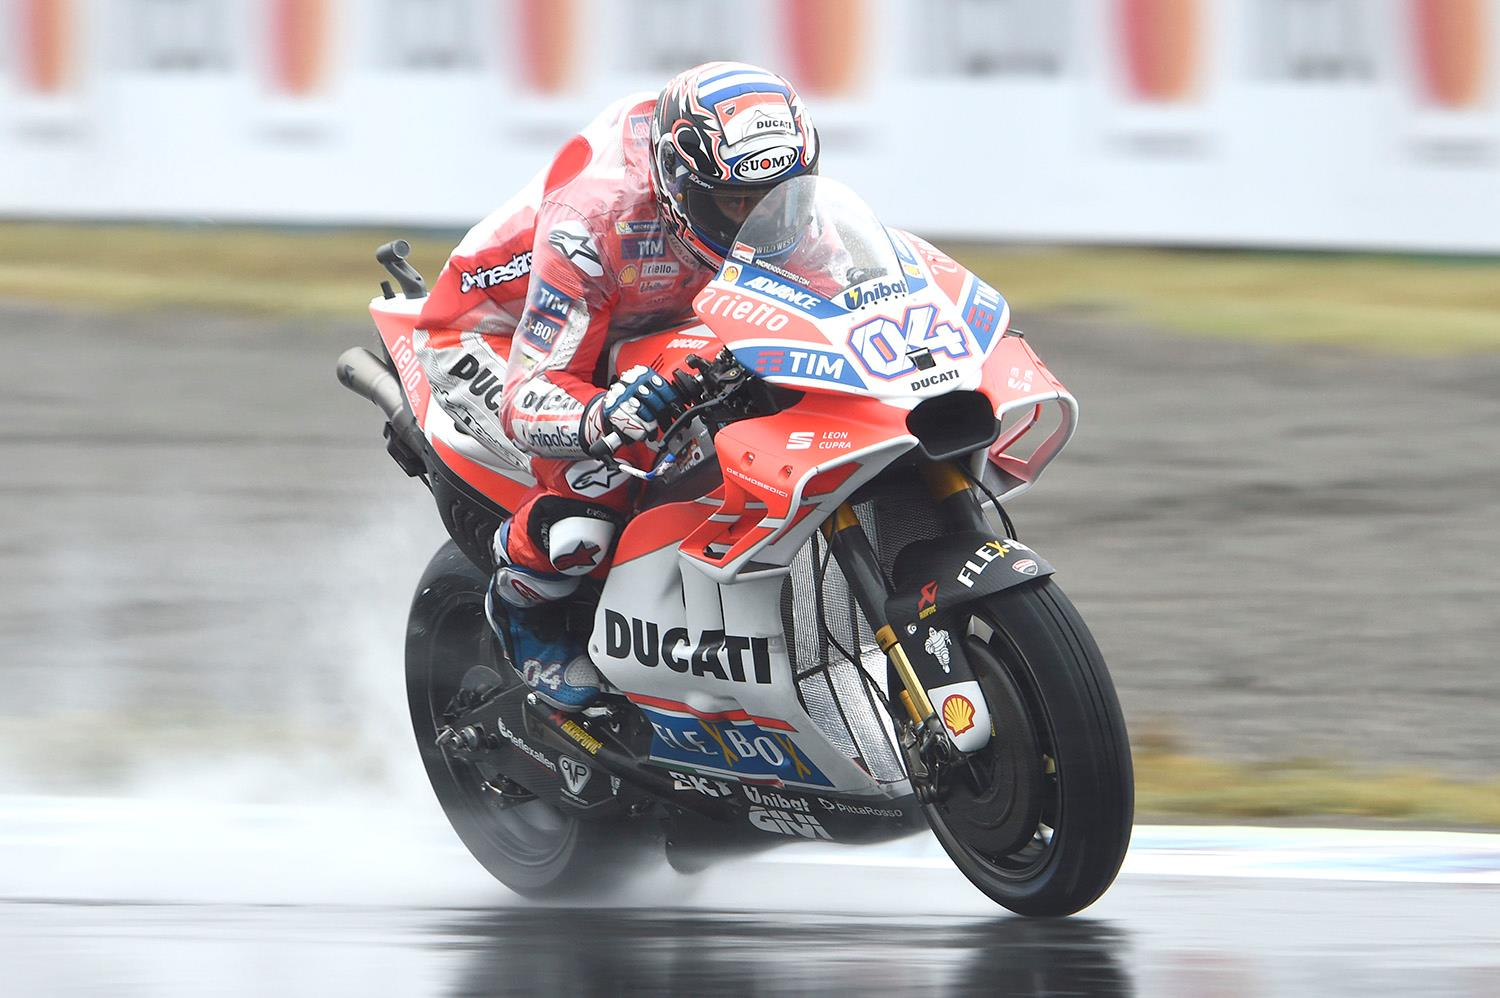 Dovizioso defeats Marquez in wet MotoGP epic